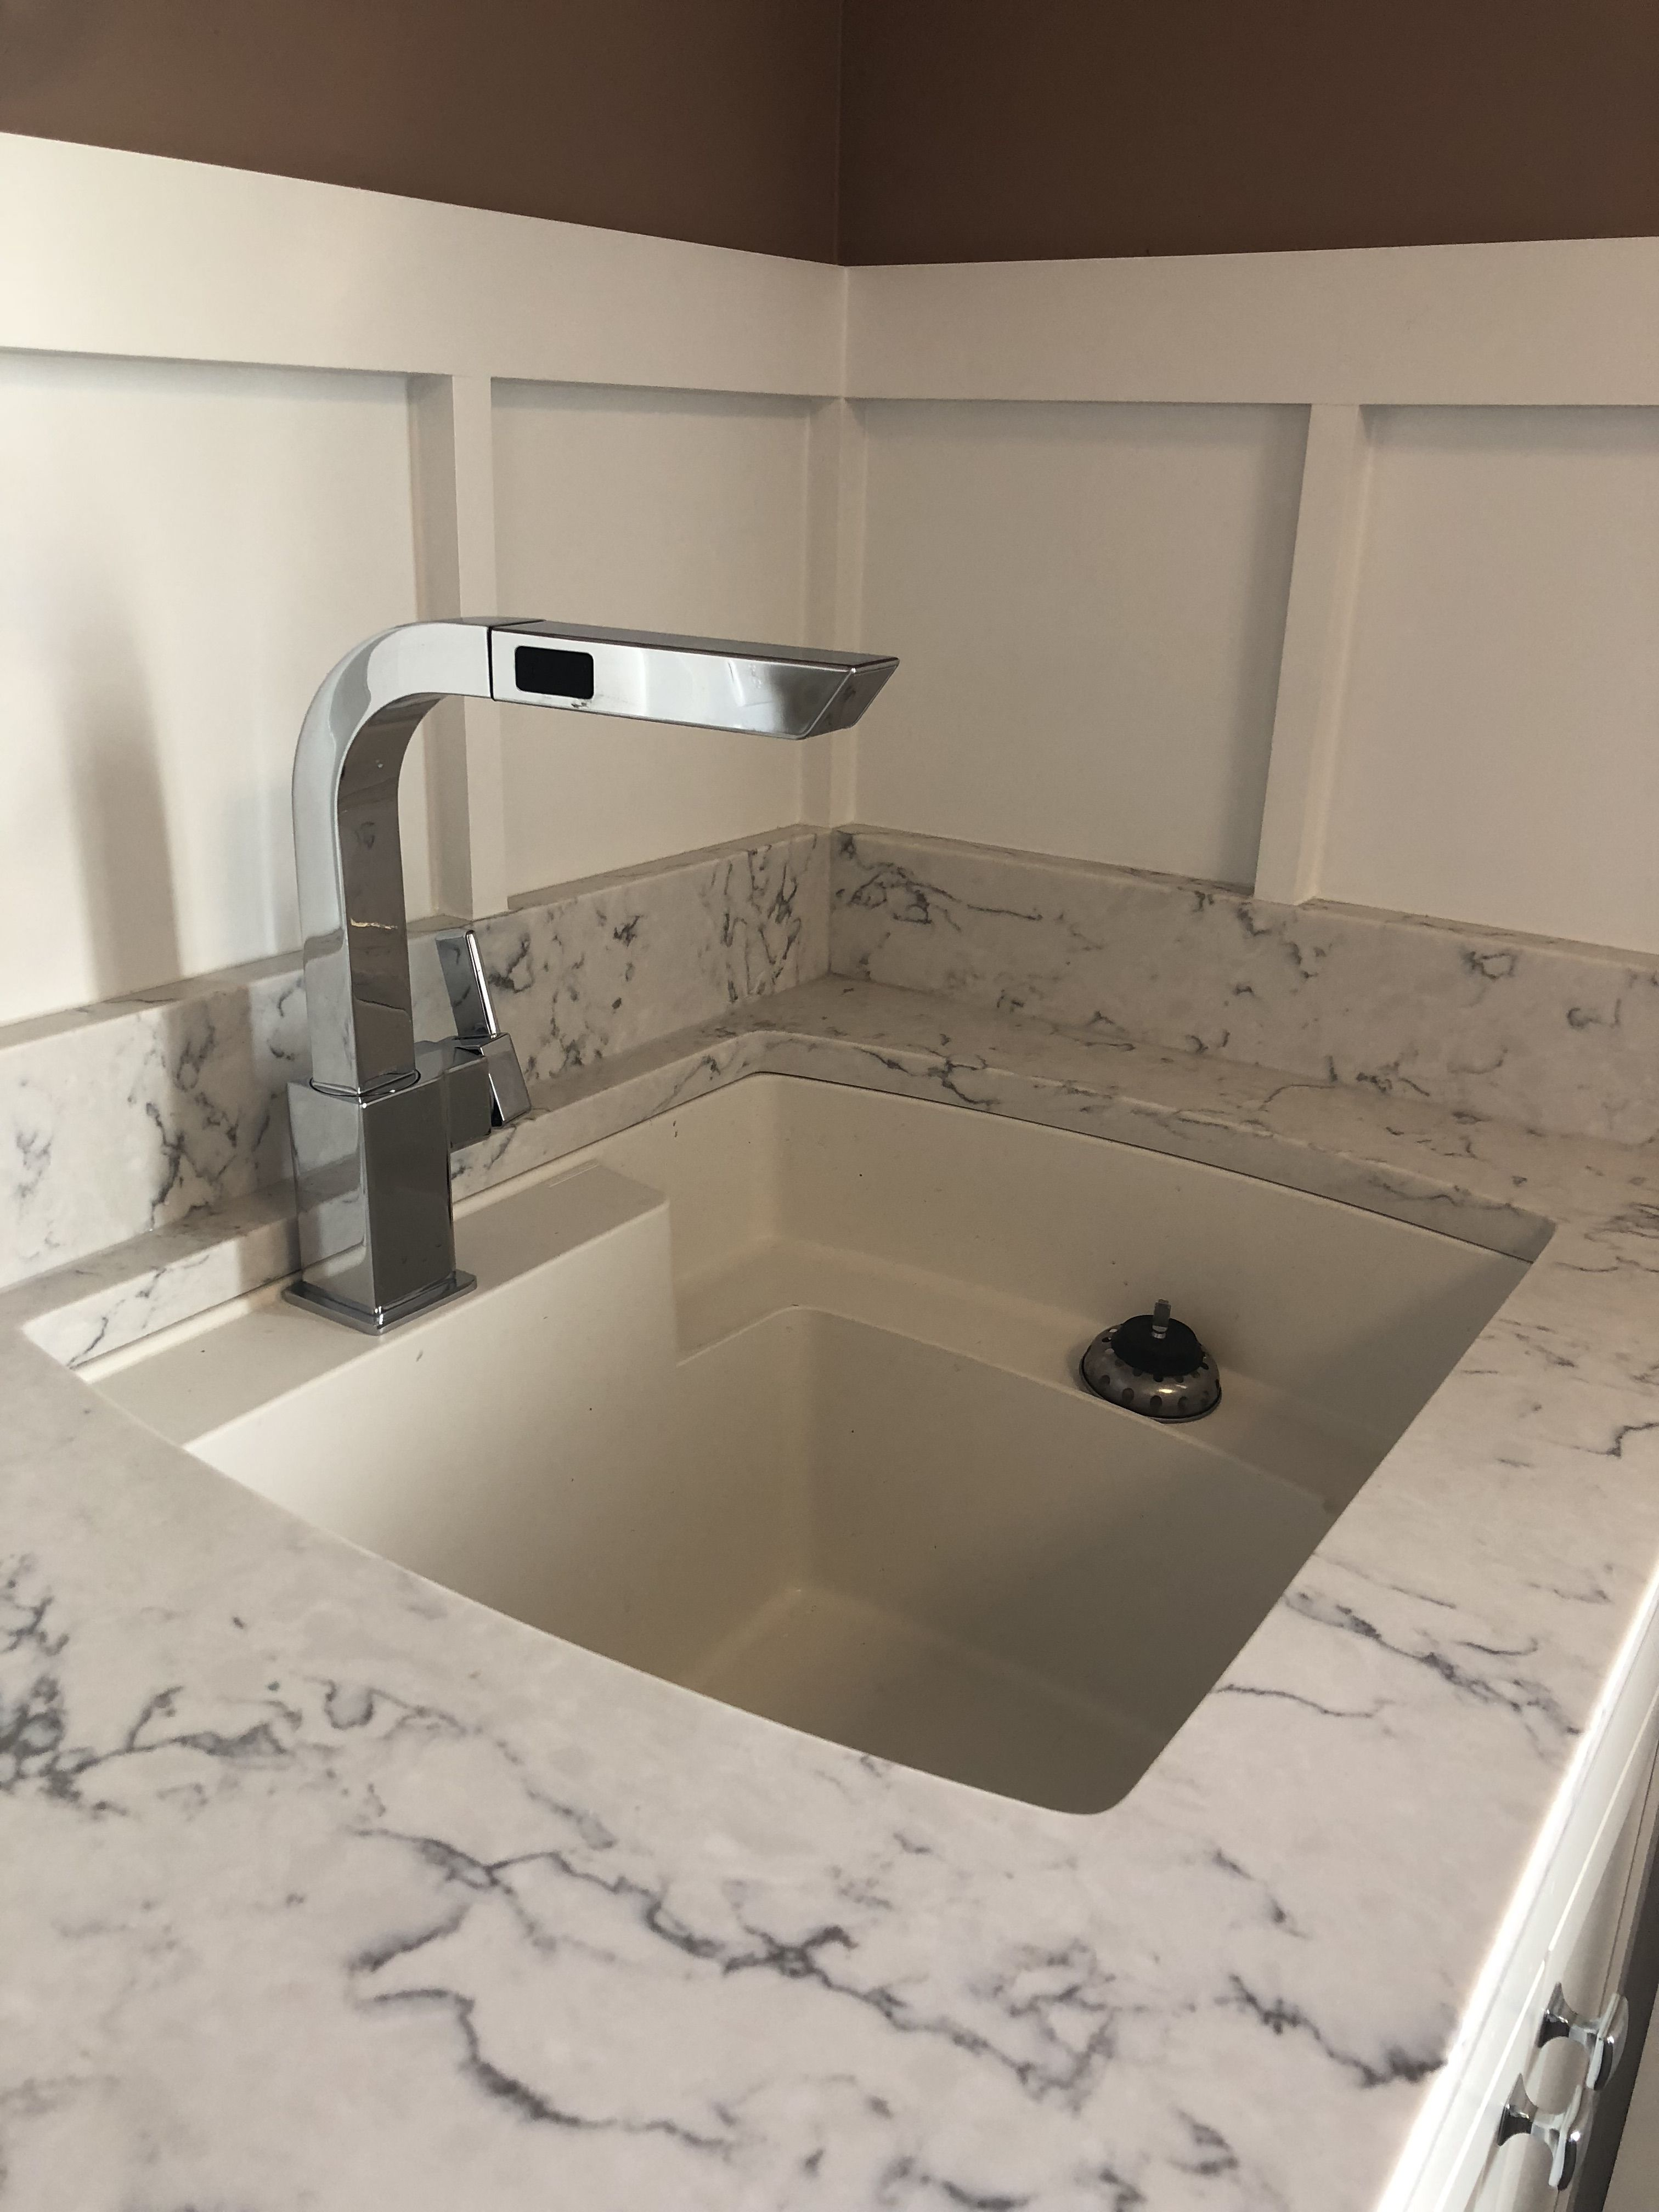 Moen 90 Chrome Faucet Used For Laundry Sink